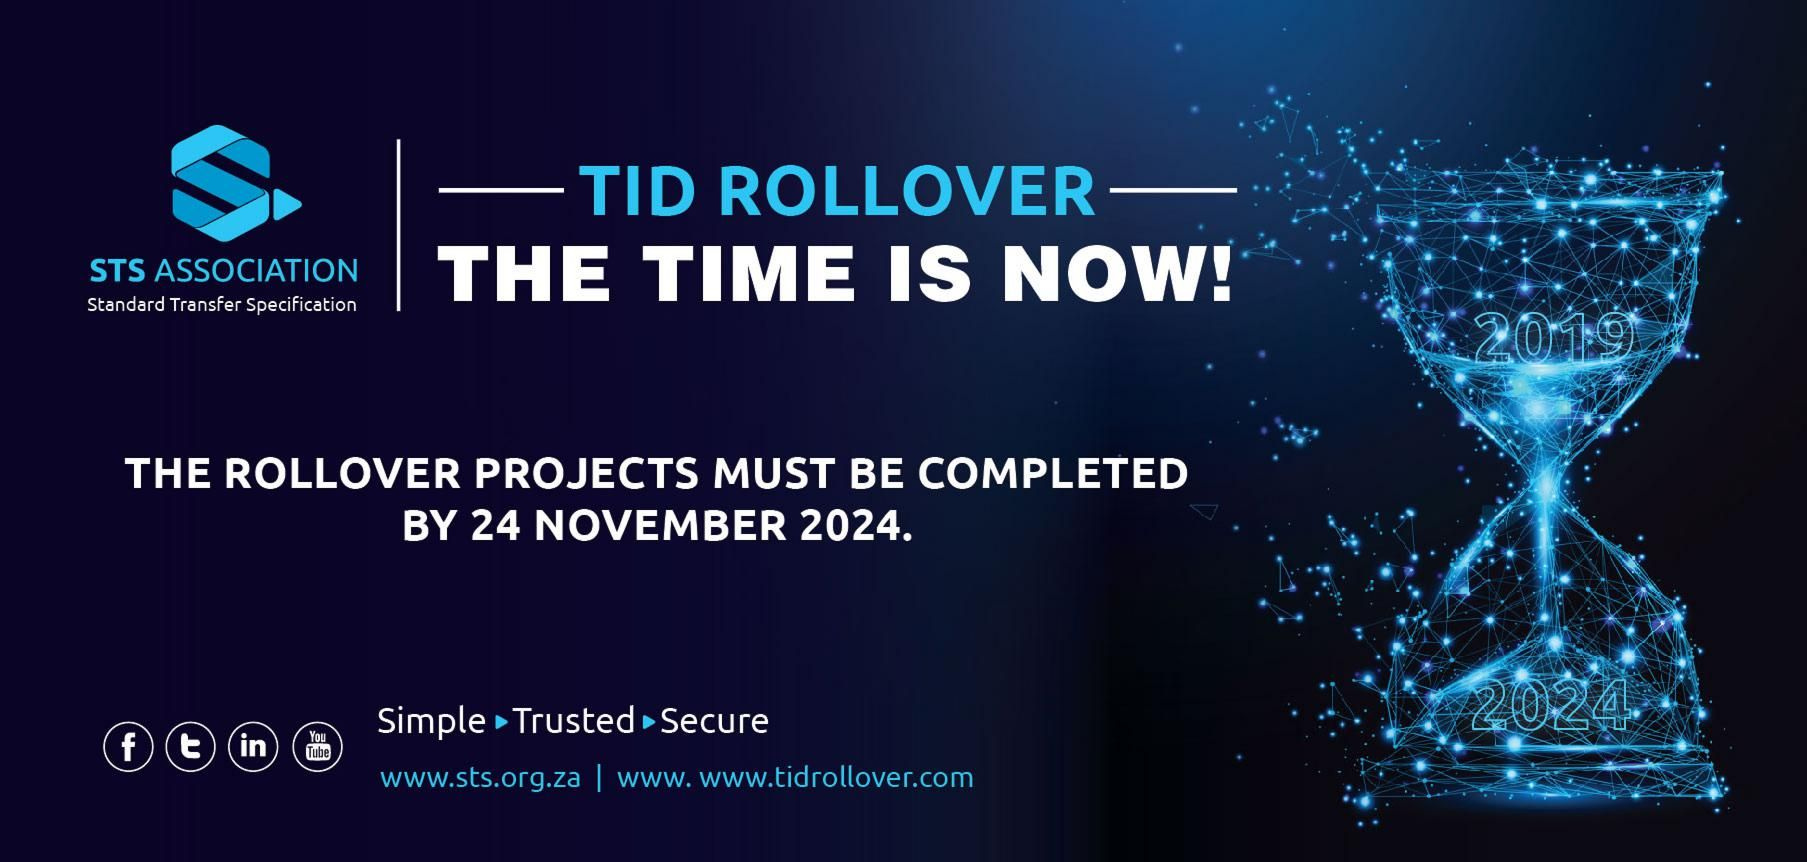 TID ROLLOVER COUNTDOWN CONTINUES